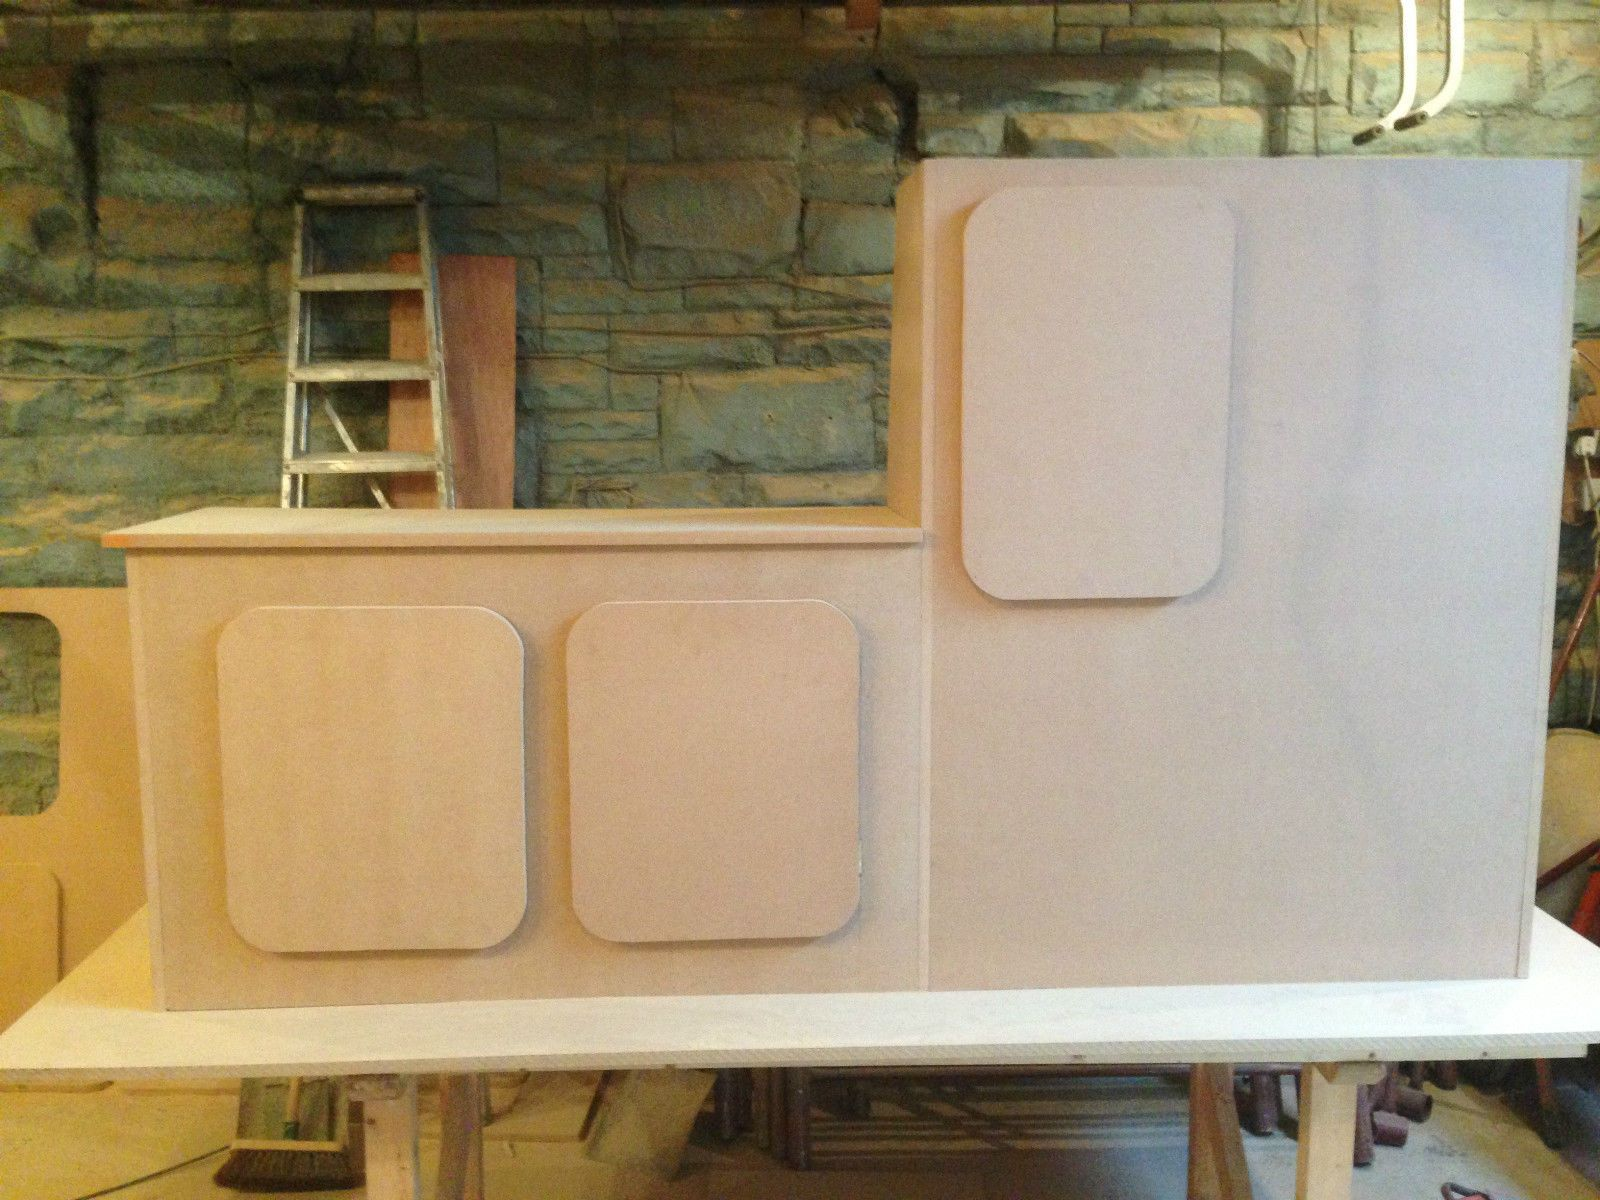 Interior Kitchen Ford Transit Kitchen Unit Cupboards Camper Van Campervan Interior